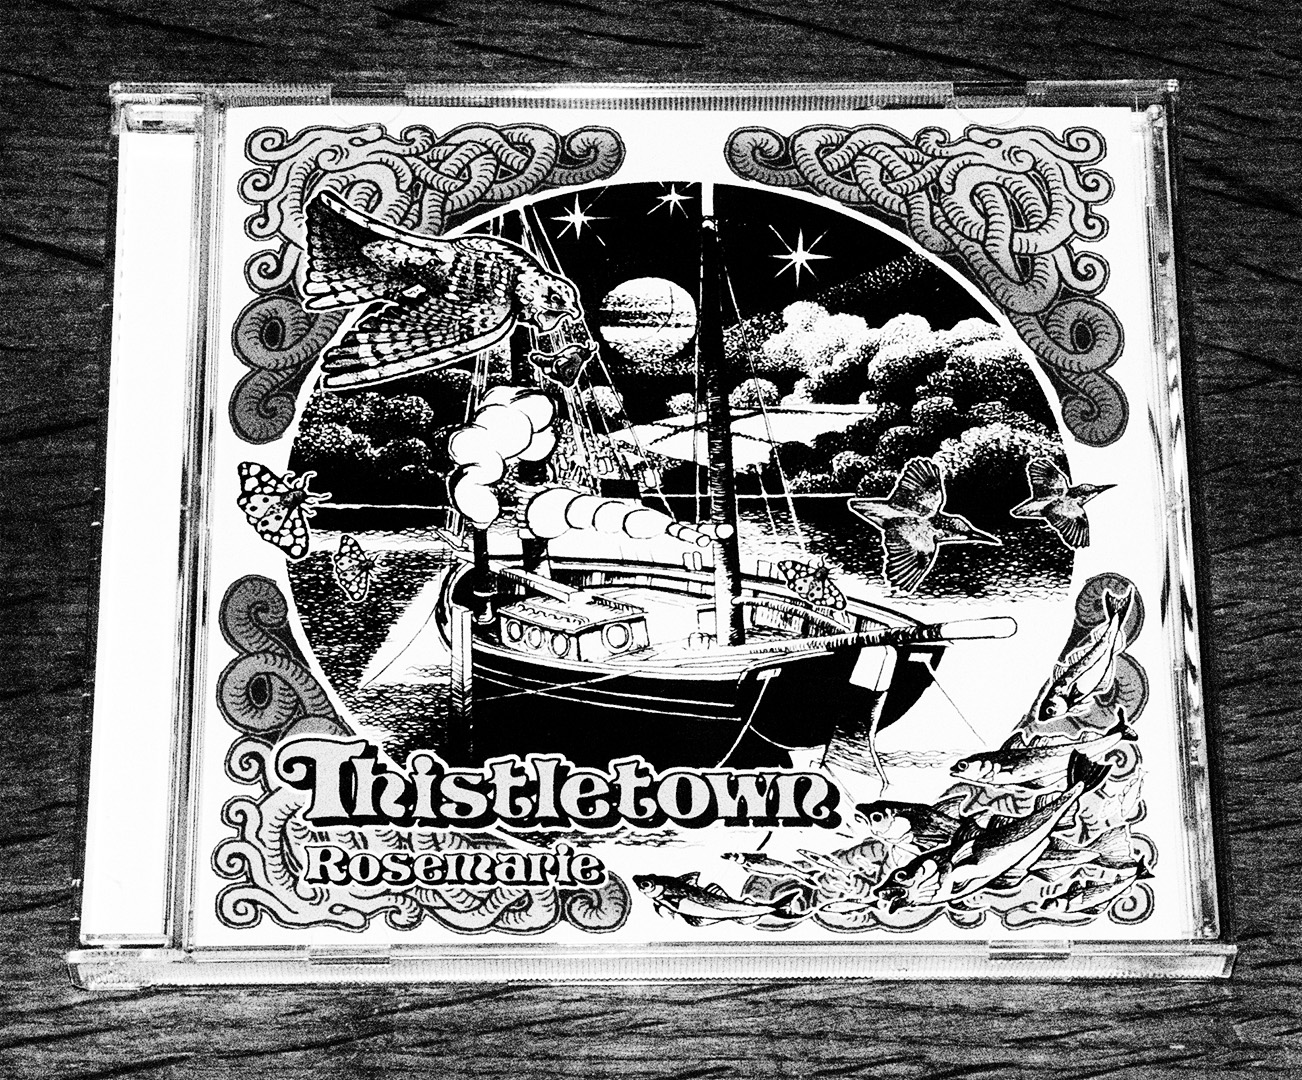 Thistletown-Rosemarie-A Year In The Country